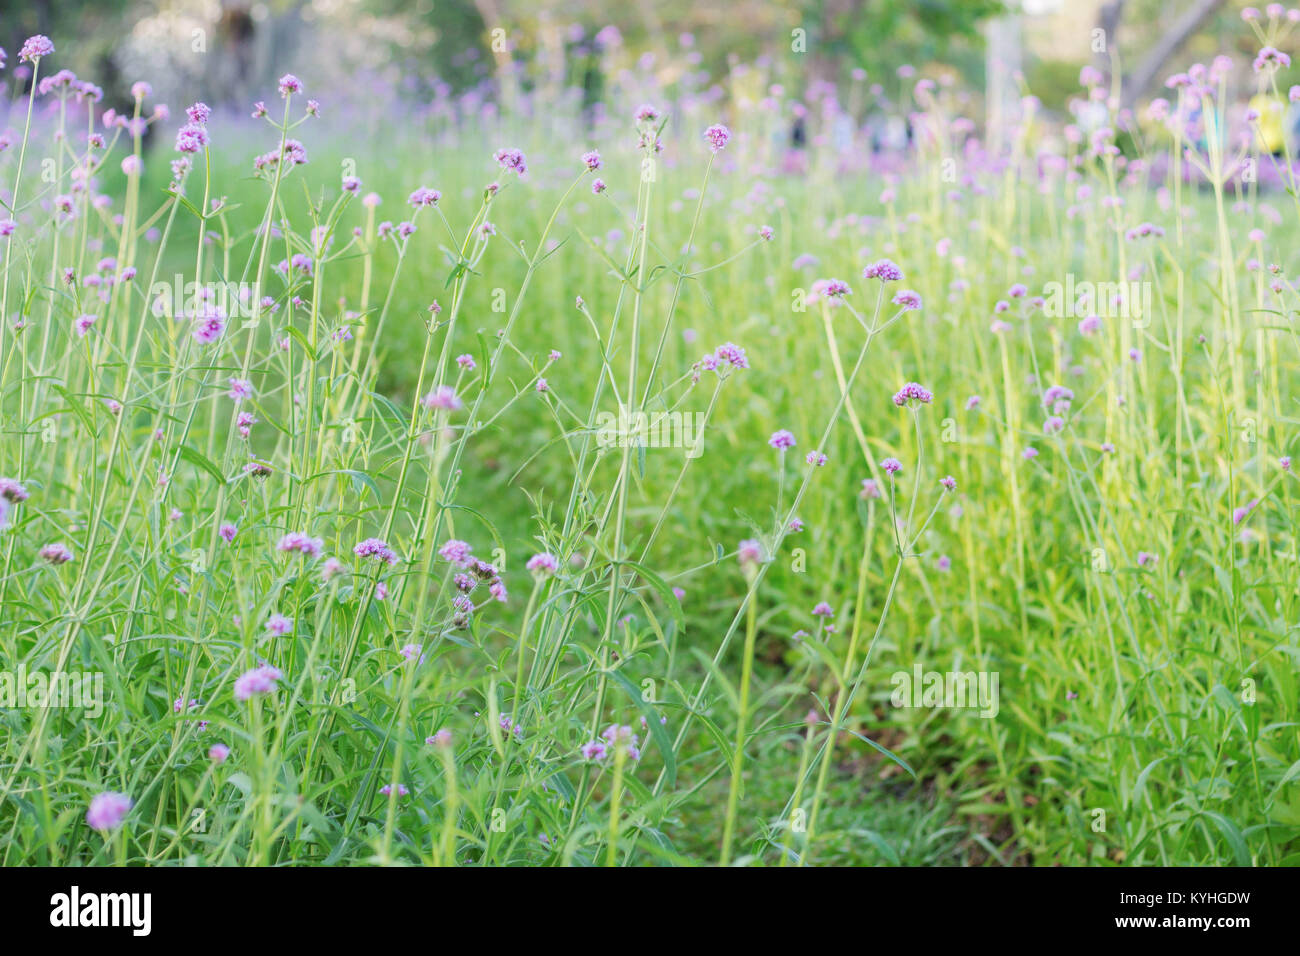 Planting Purple Flowers In The Garden With Nature On Green Grass